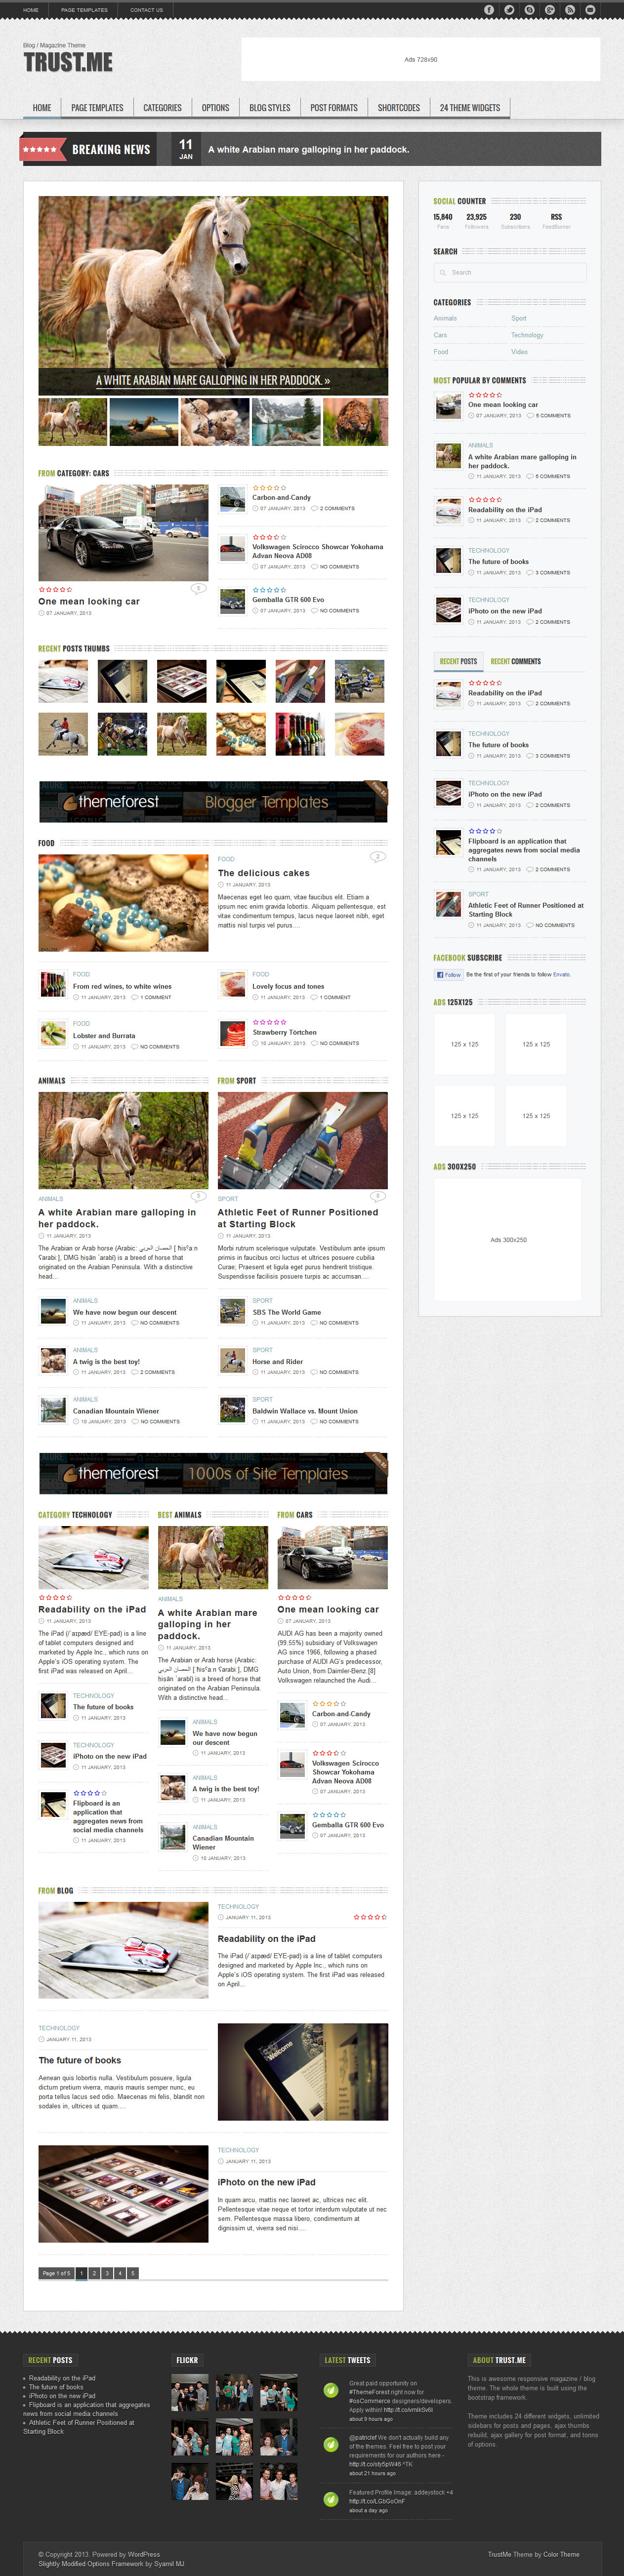 TrustMe - Responsive WordPress Magazine / Blog - Home Page